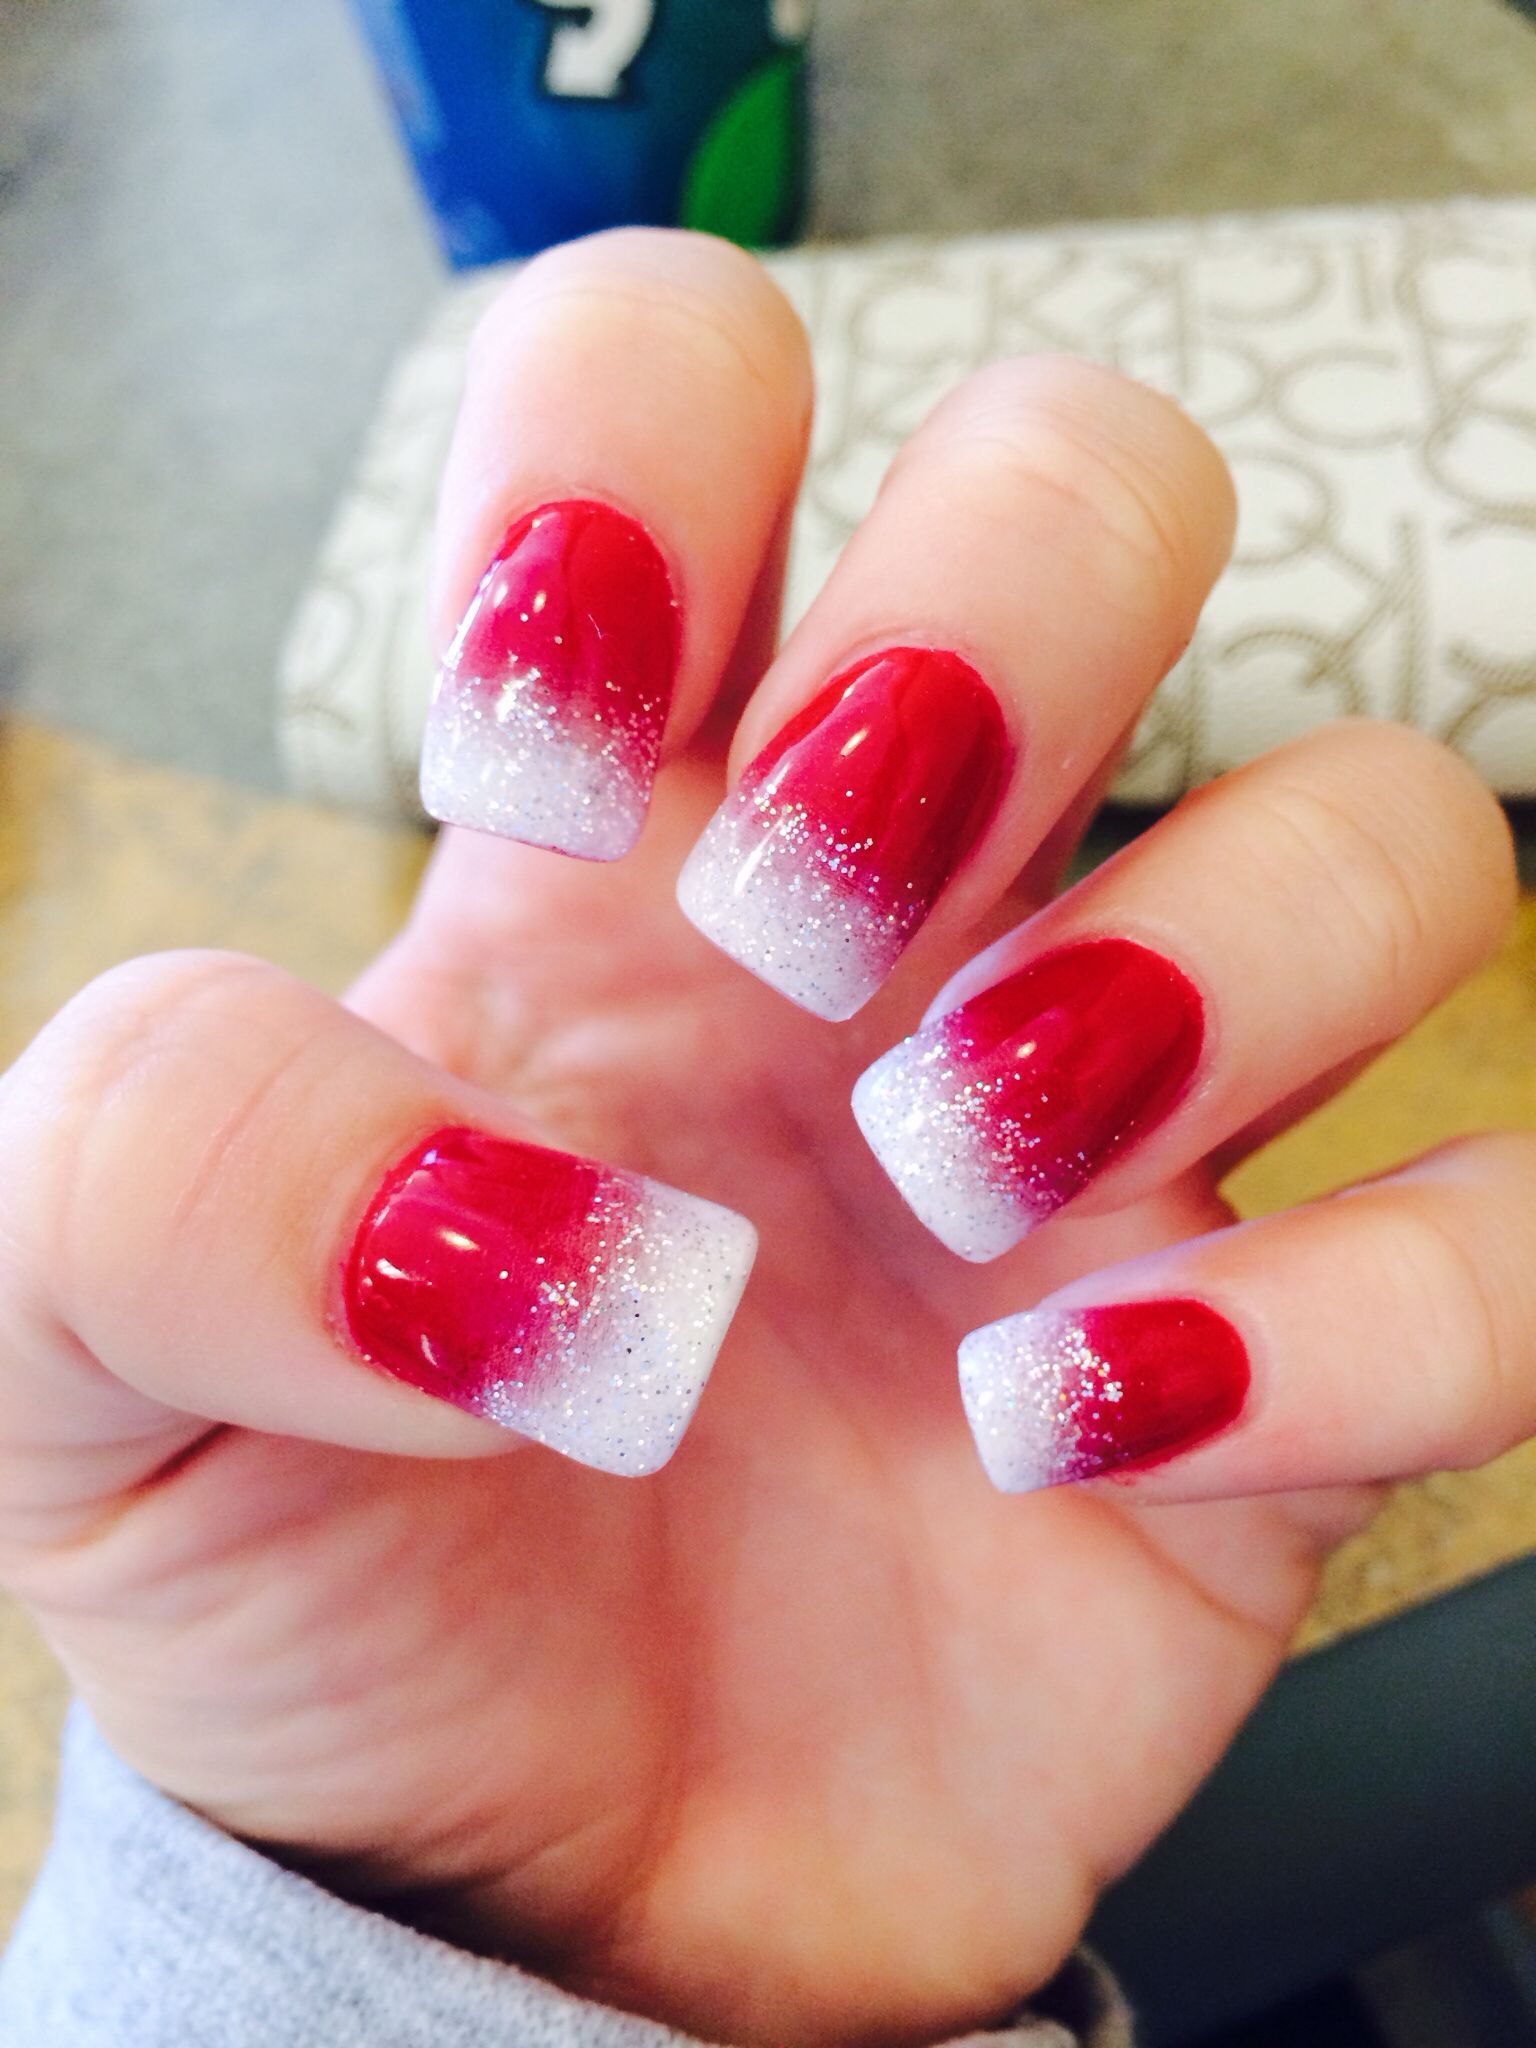 red nails with white ombré and sparkle at the tip | holiday nails